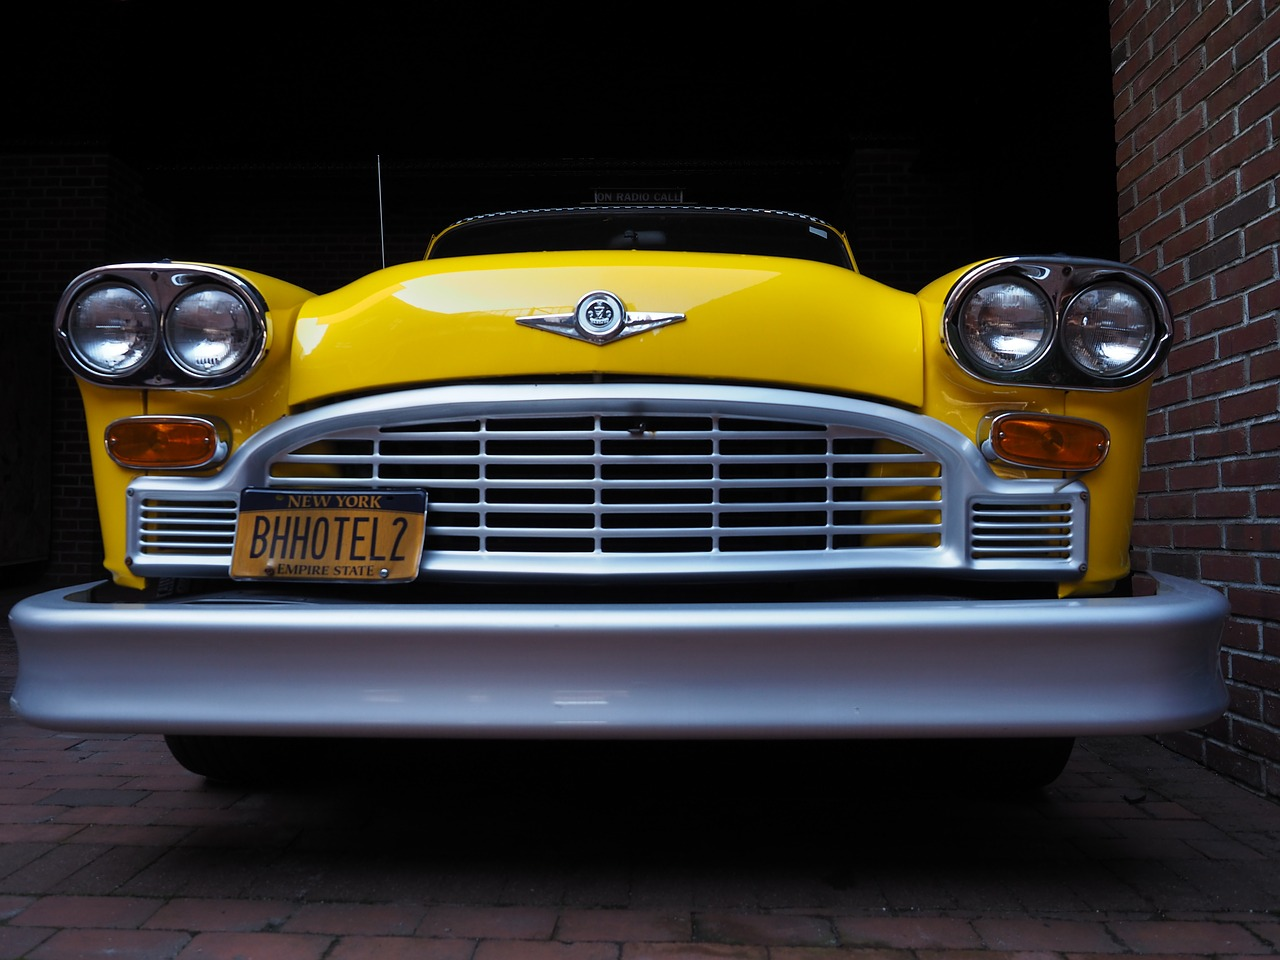 Vintage Yellow Car in New York | Kids Car Donations